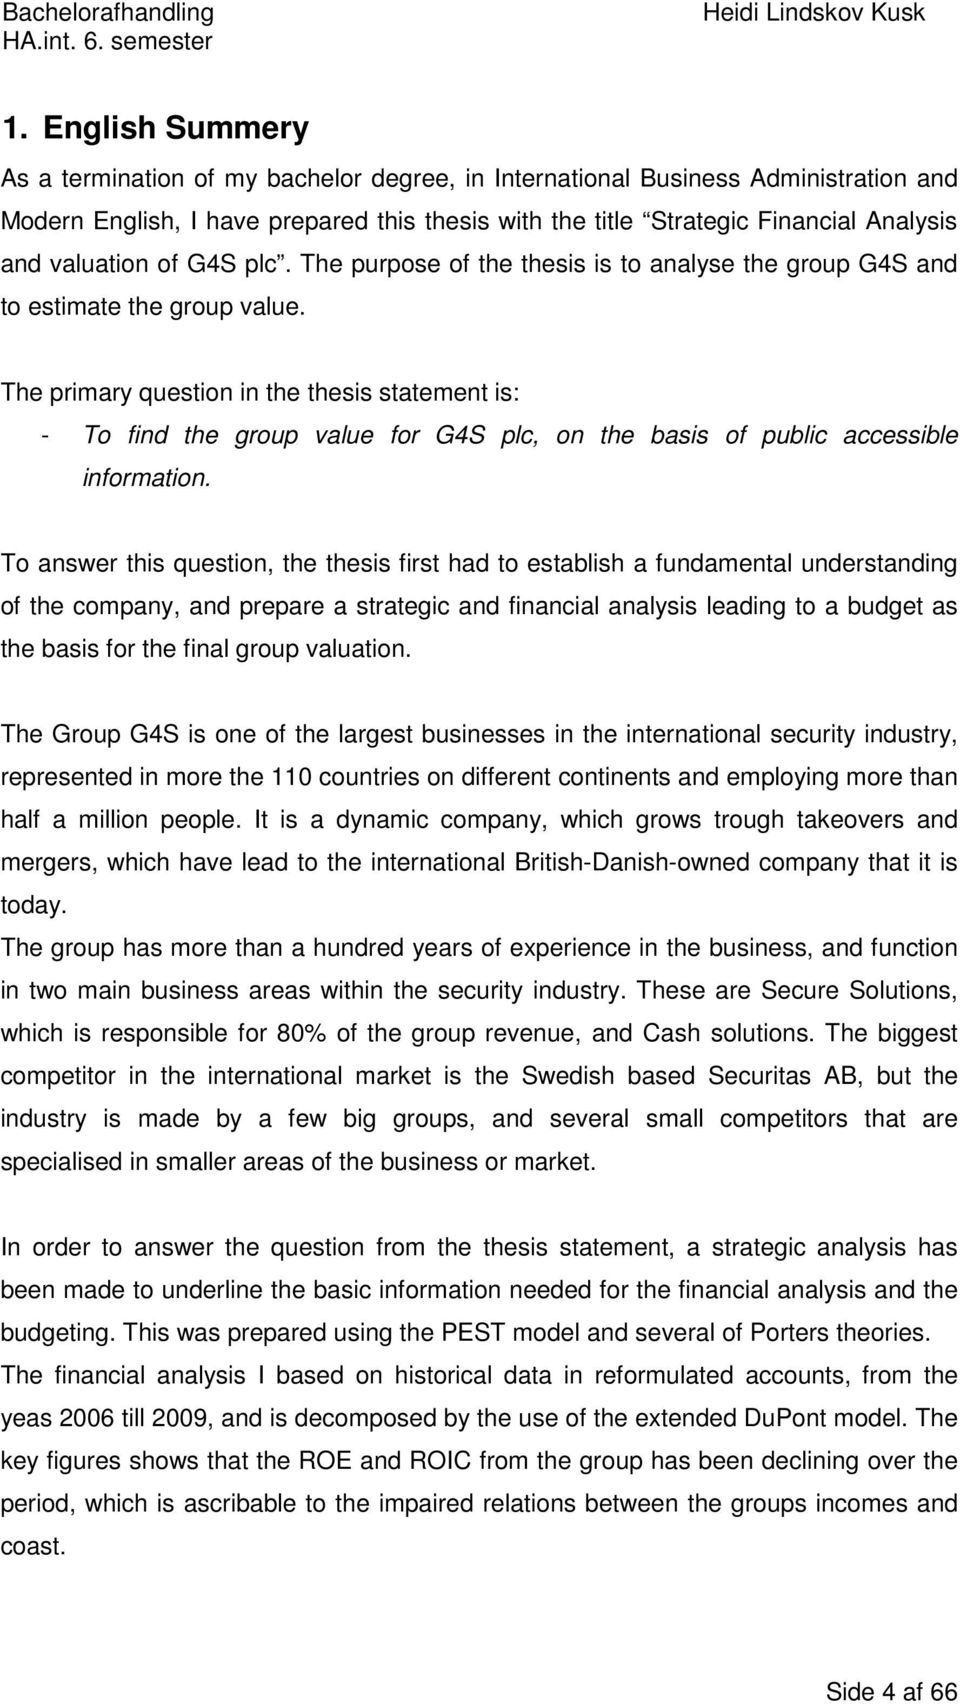 The primary question in the thesis statement is: - To find the group value for G4S plc, on the basis of public accessible information.